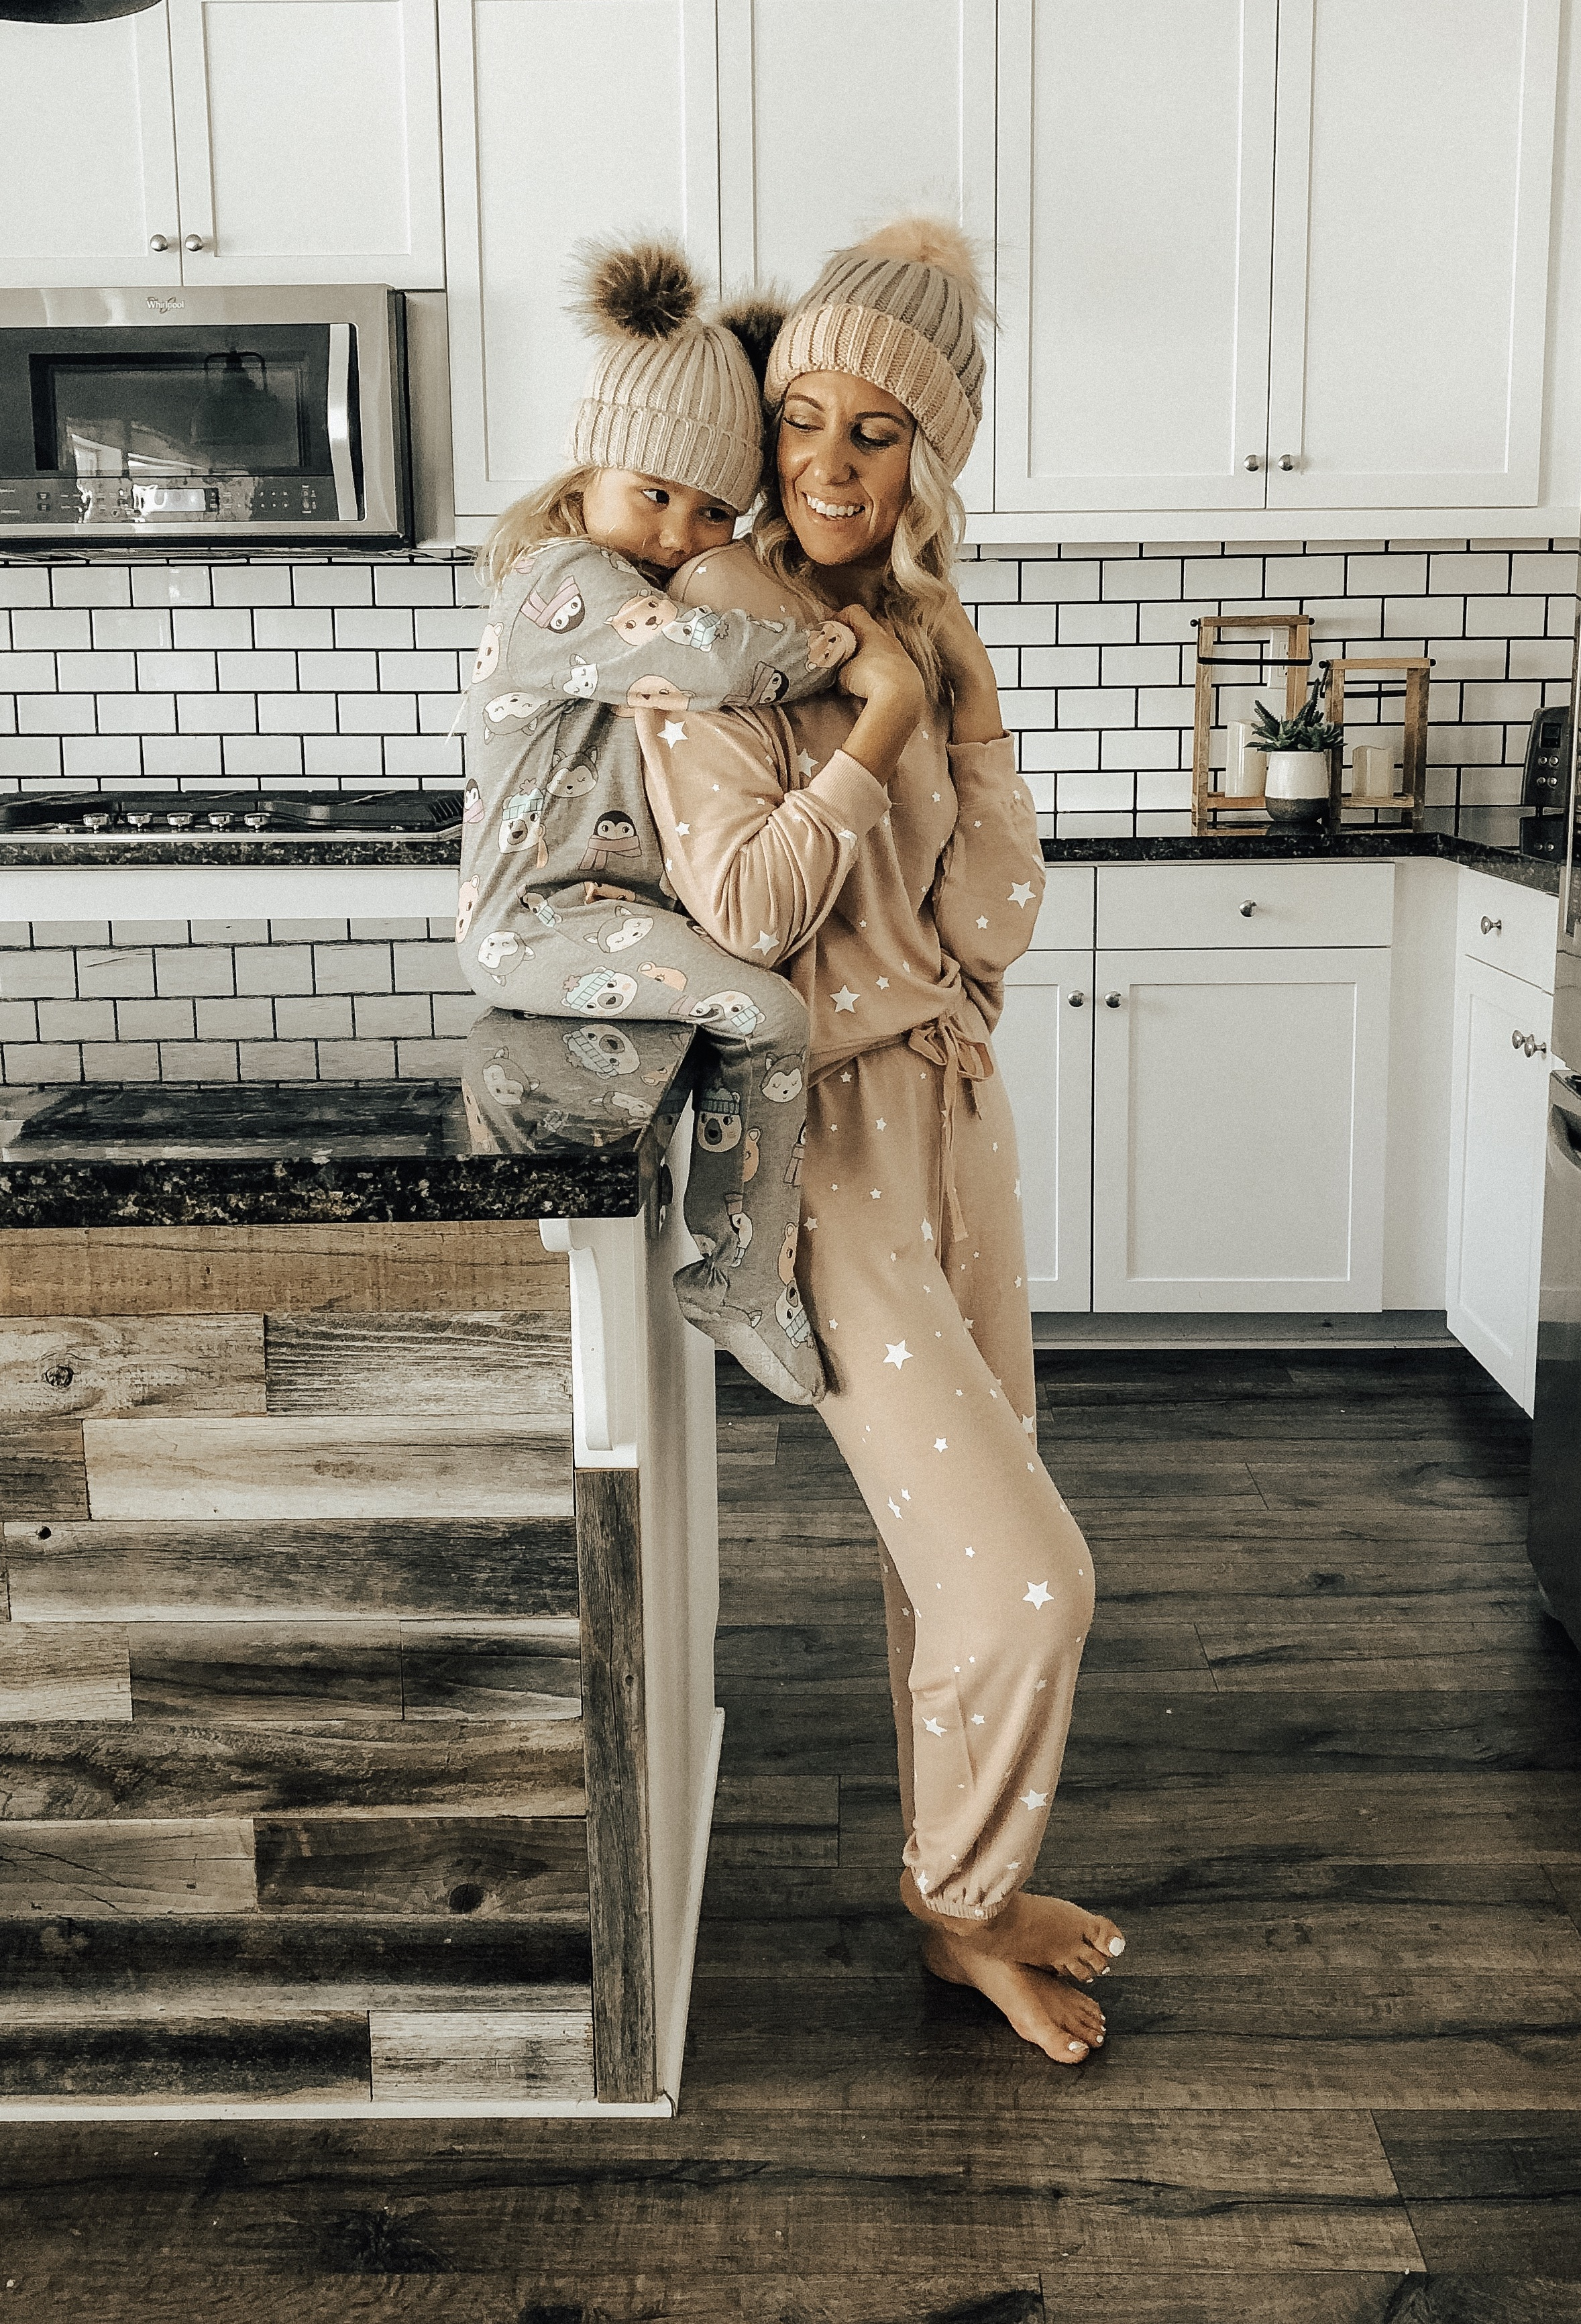 THE COZY GIFT GUIDE- Jaclyn De Leon Style + mommy and me pajamas + pom pom beanies + star print matching set + z supply + pajama onesie + target style + mom style + casual style + holiday matching looks + cozy